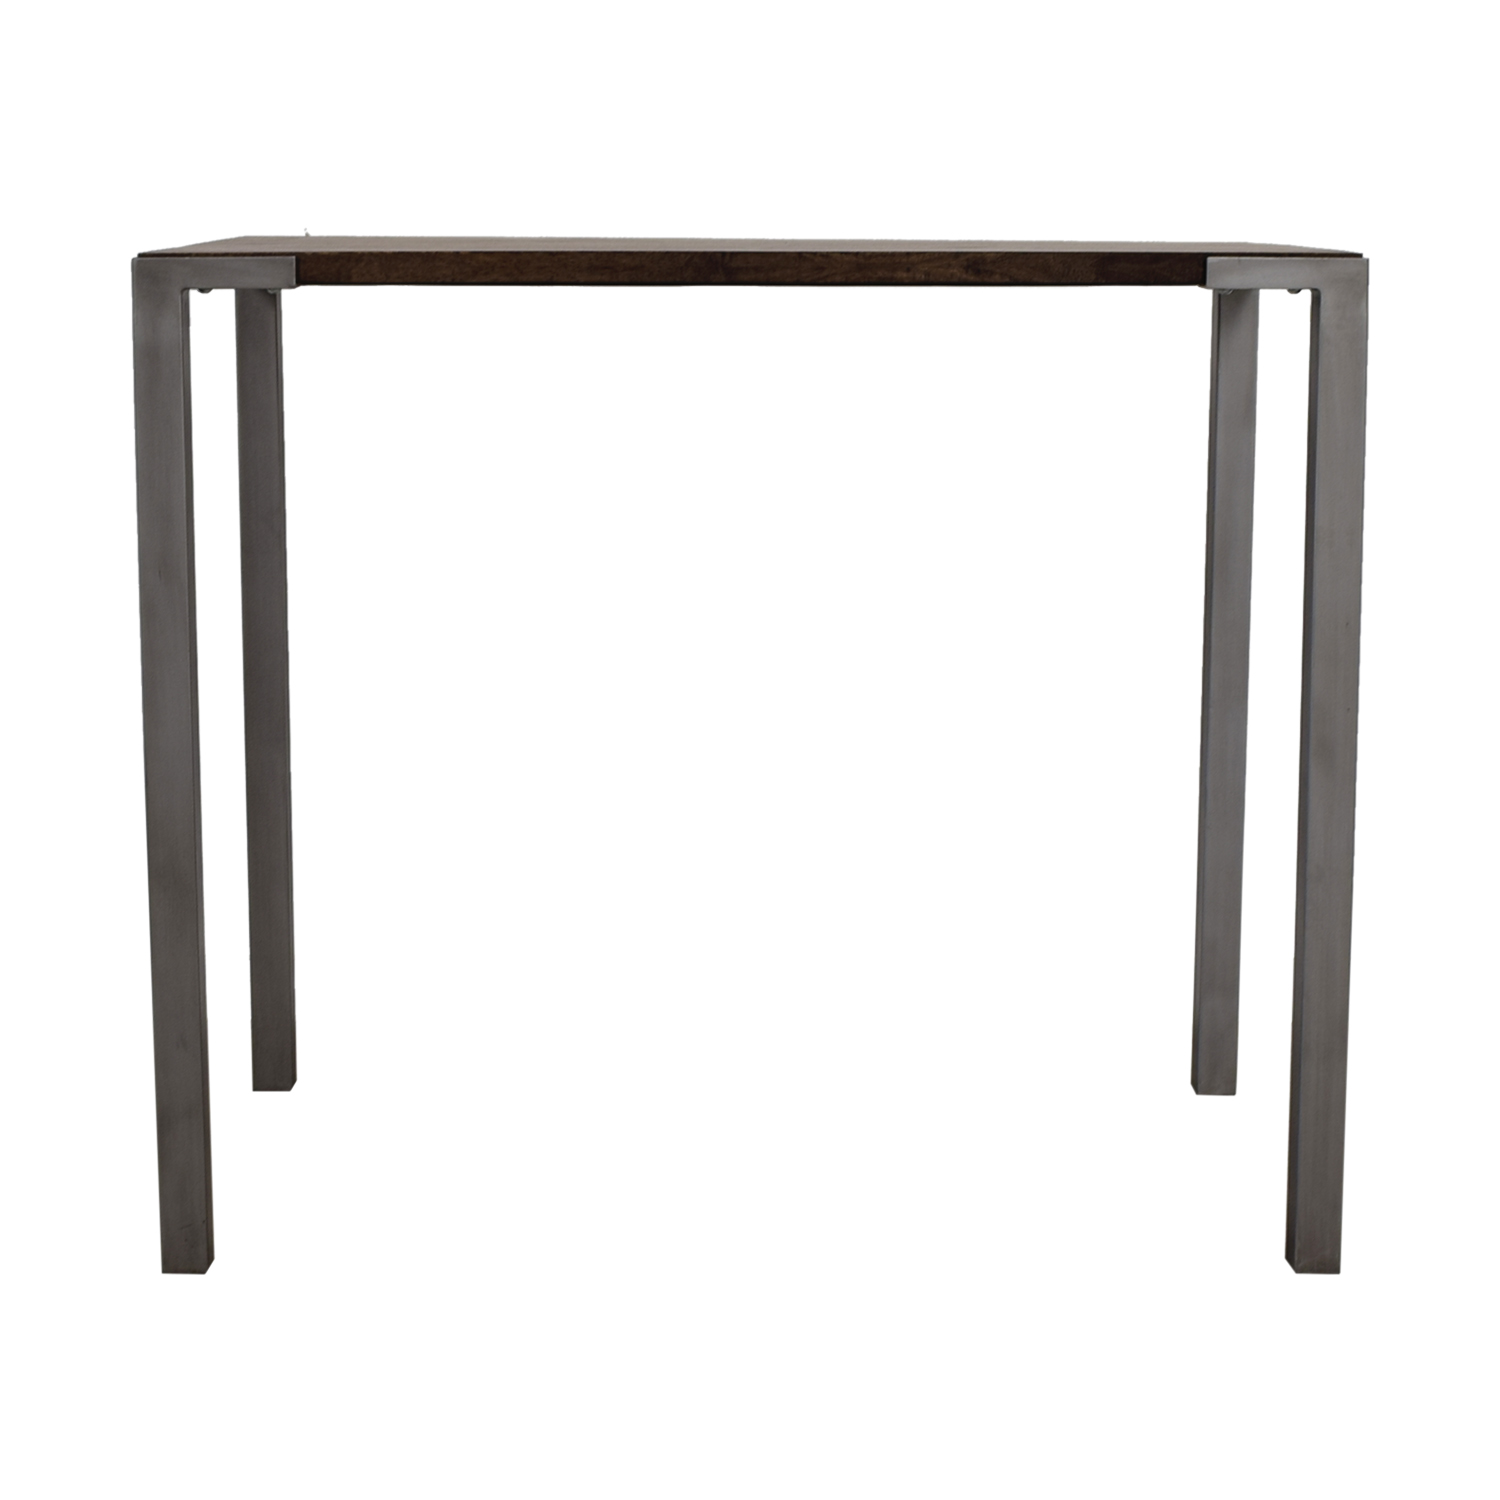 CB2 Stilt Wood and Metal Table sale